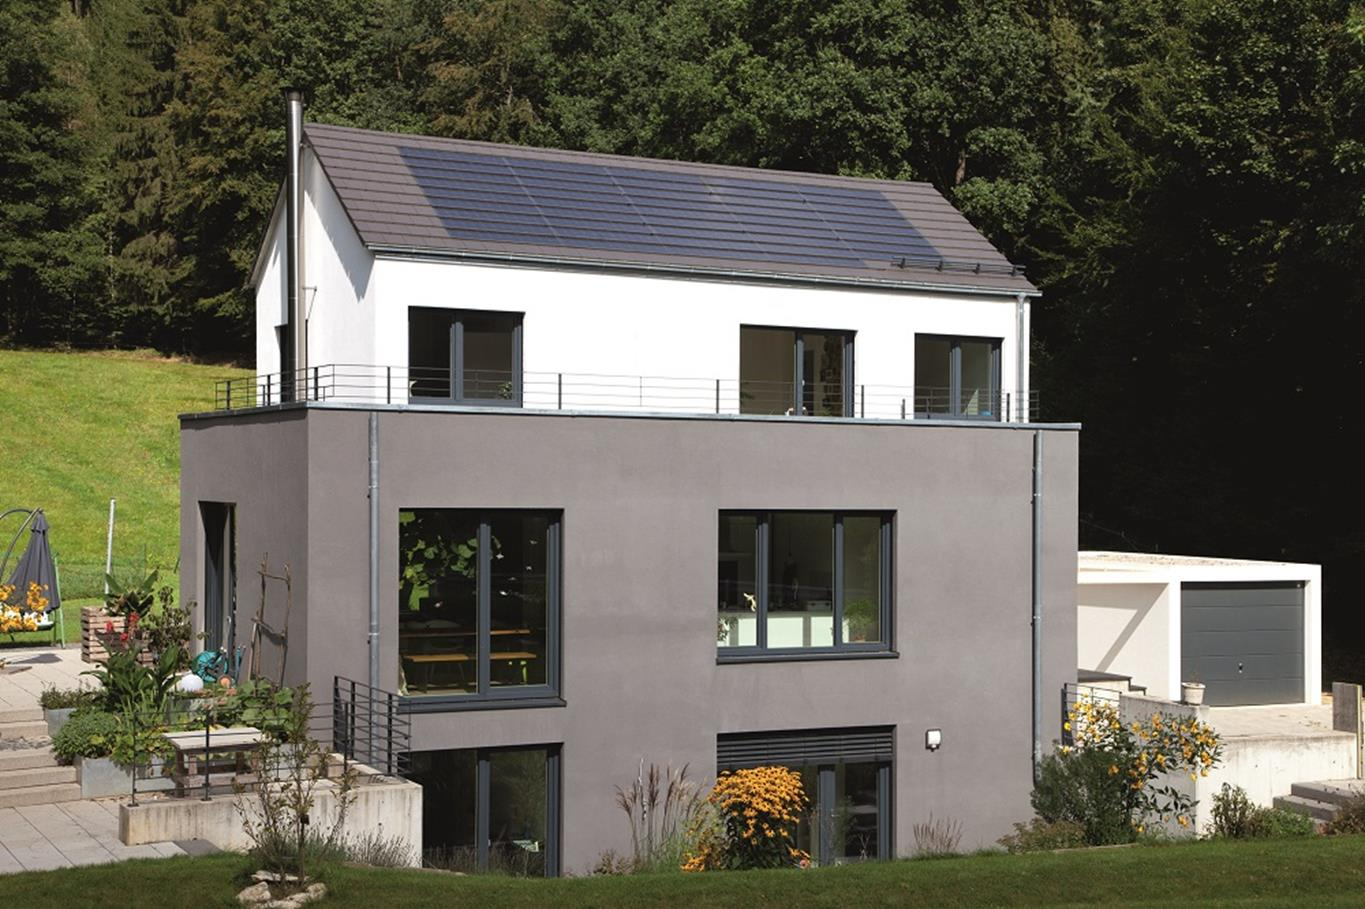 A family home in Deining Germany